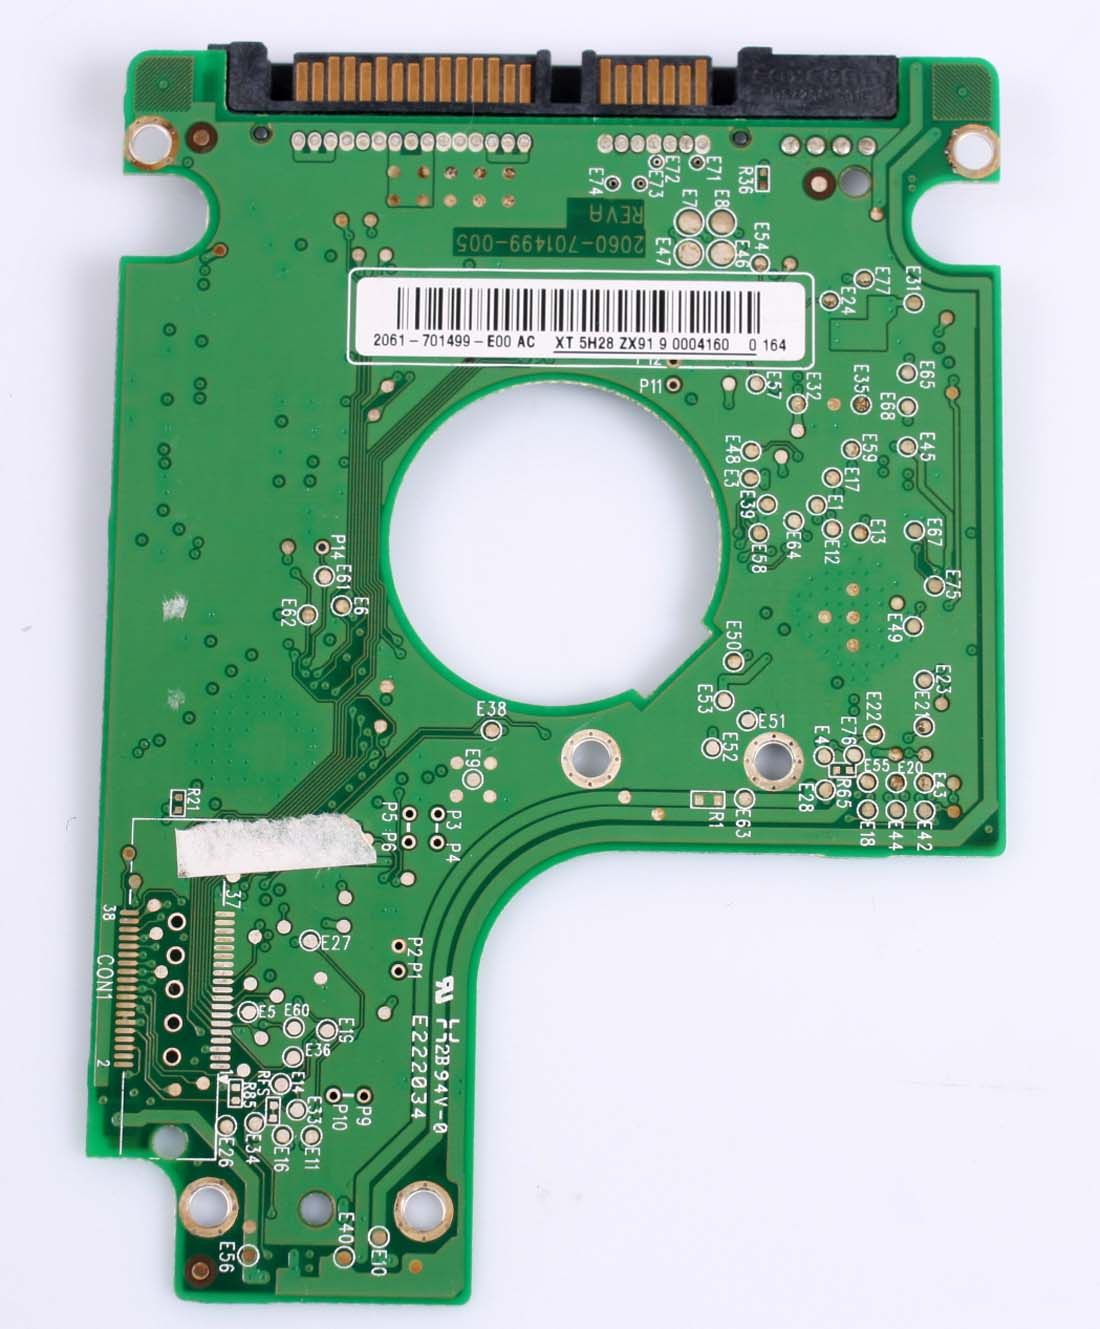 WD WD3200BEVT-22ZCT0 320GB 2,5 SATA HARD DRIVE PCB BOARD ONLY FOR DATA